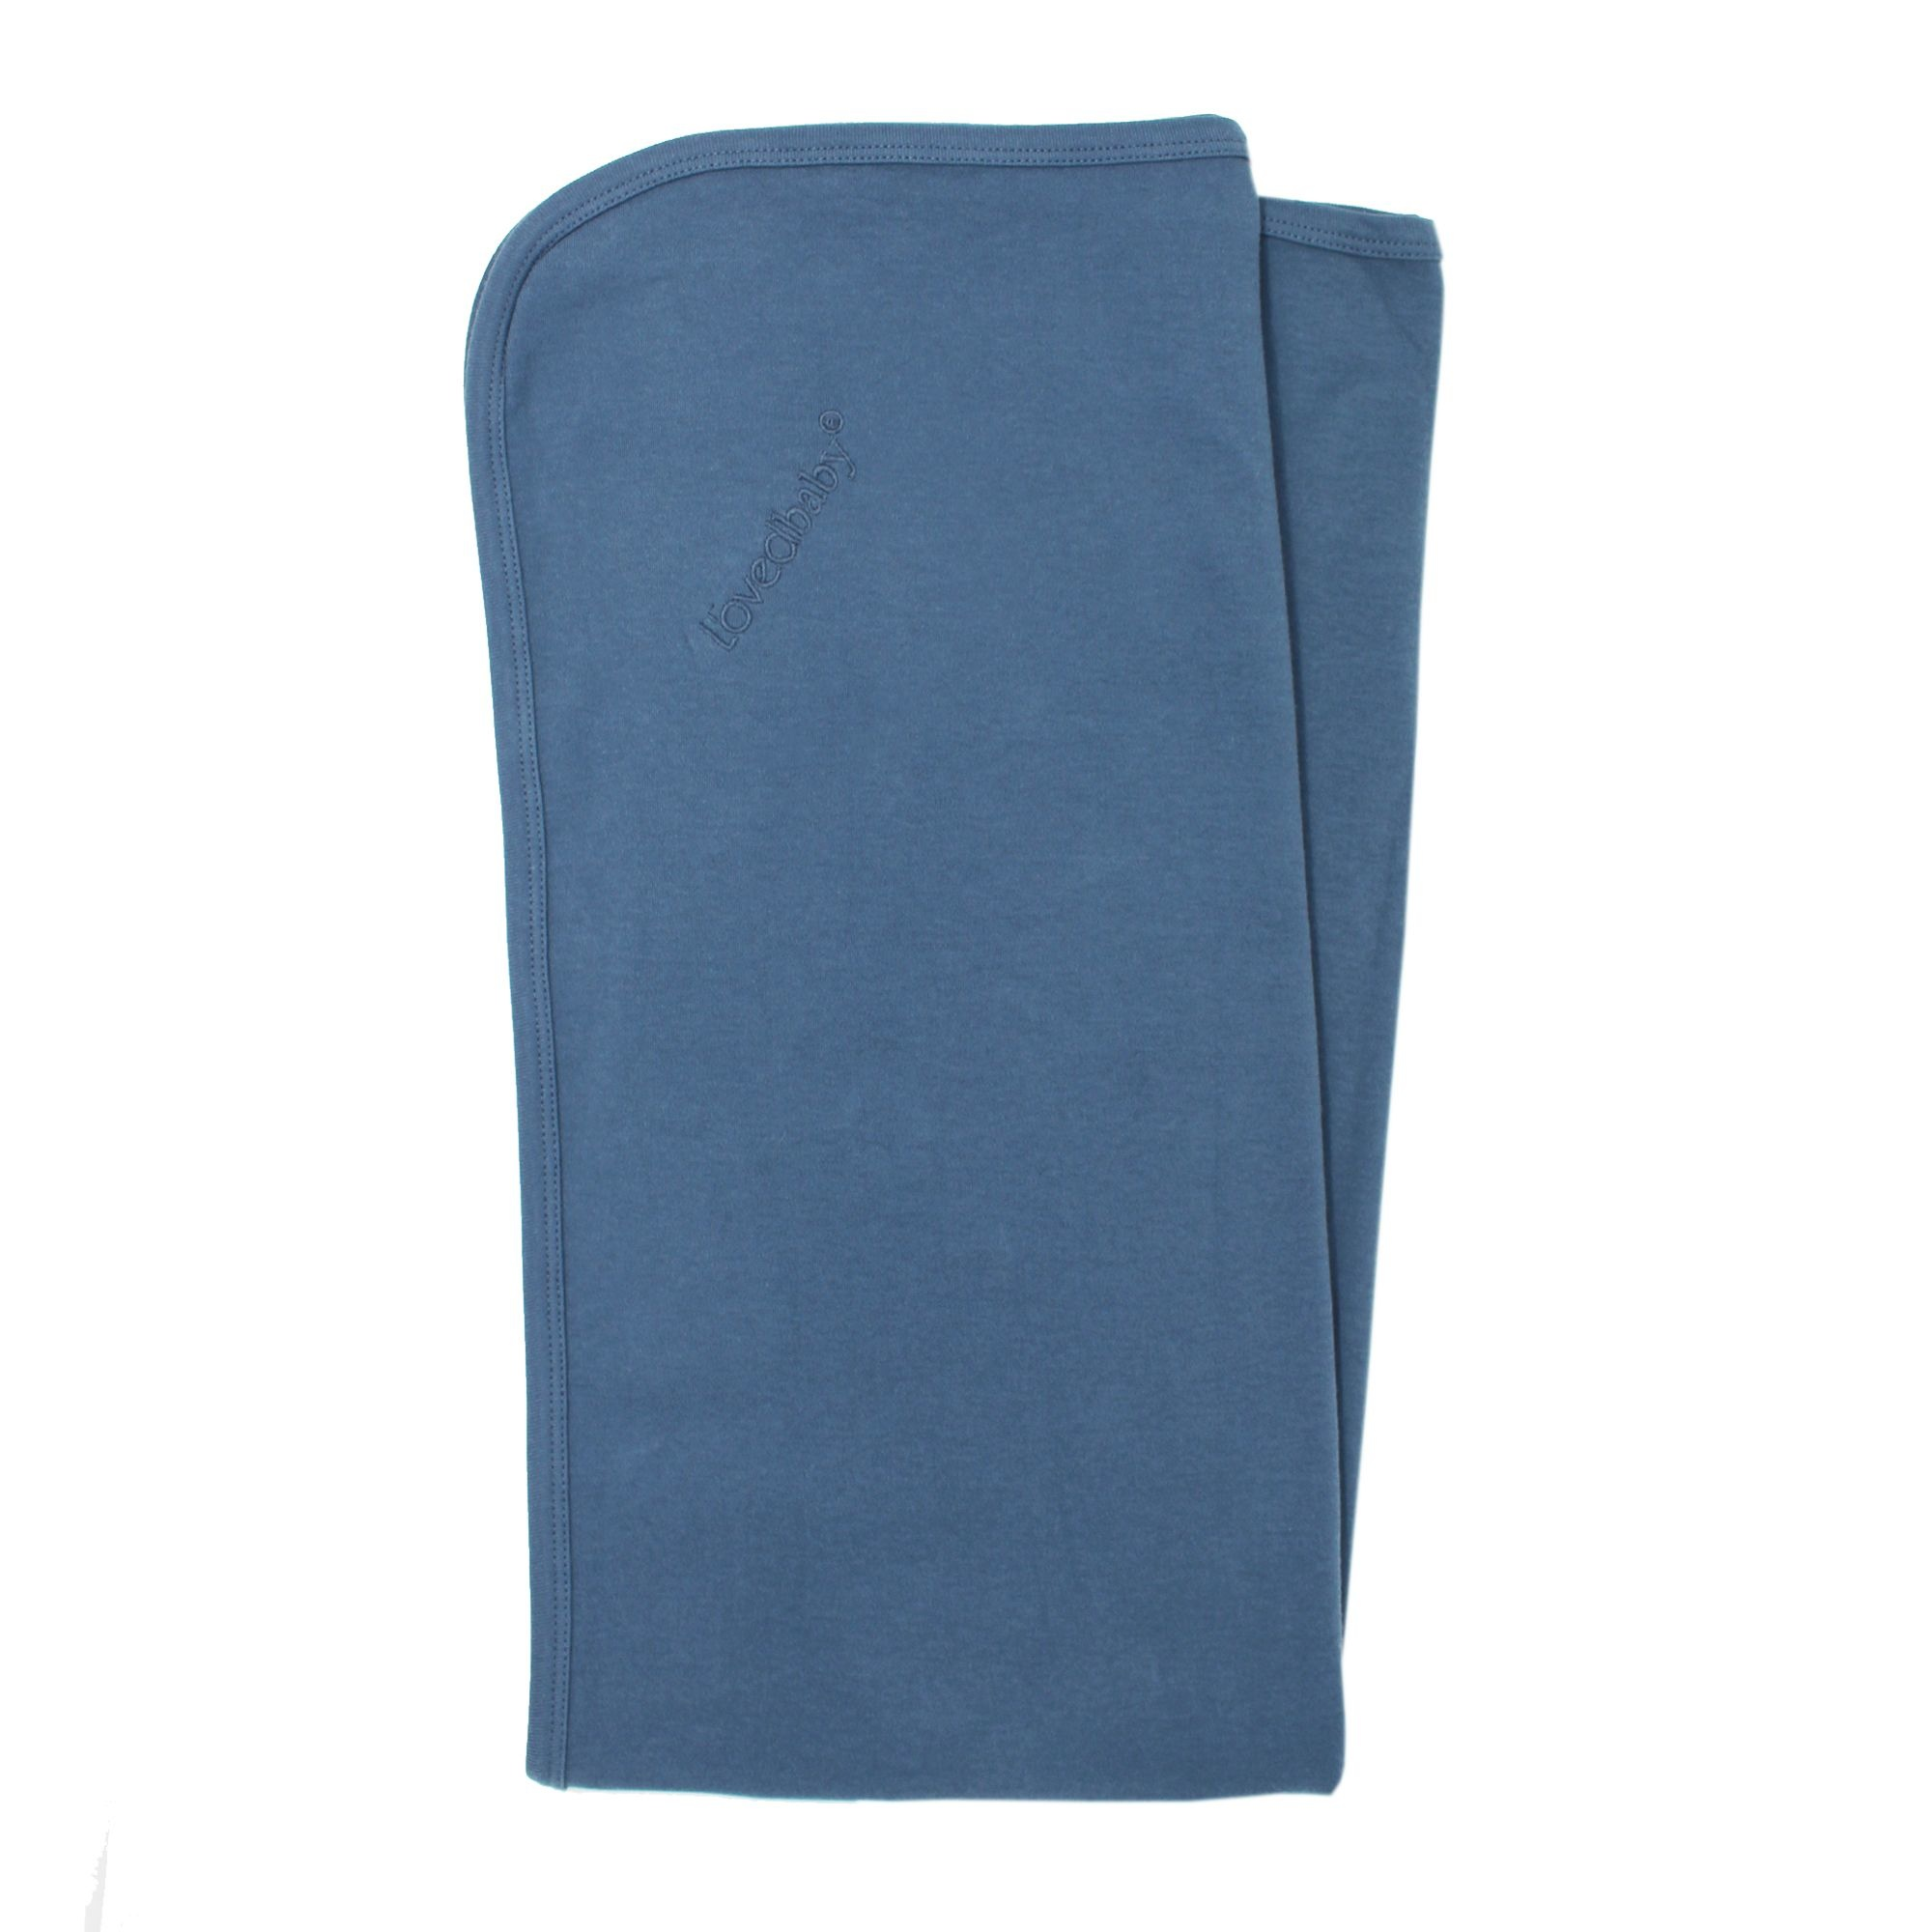 Loved Baby Loved Baby - Swaddling Blanket - Abyss